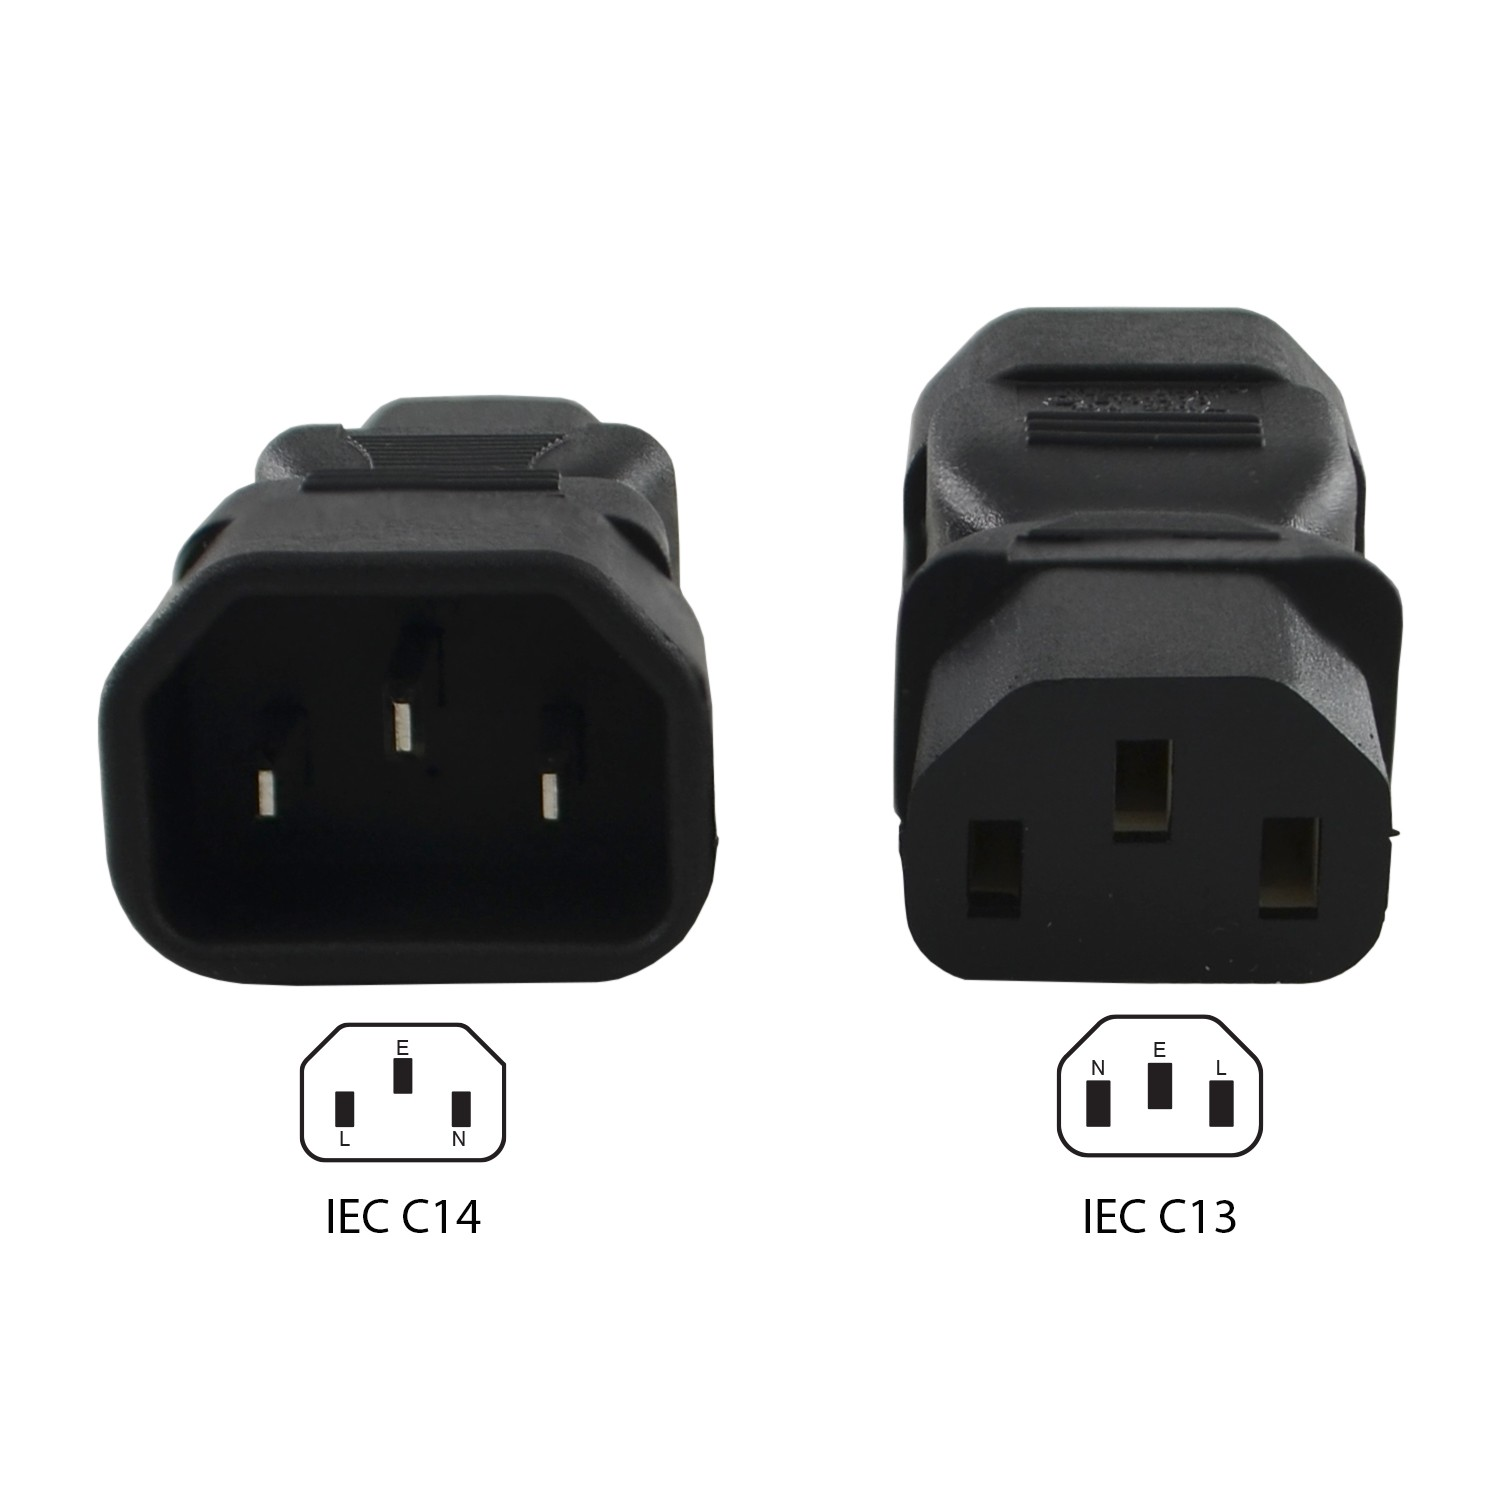 Iec C14 Inlet Pinout C14 to C13 Plug Adapter Of Iec C14 Inlet Pinout